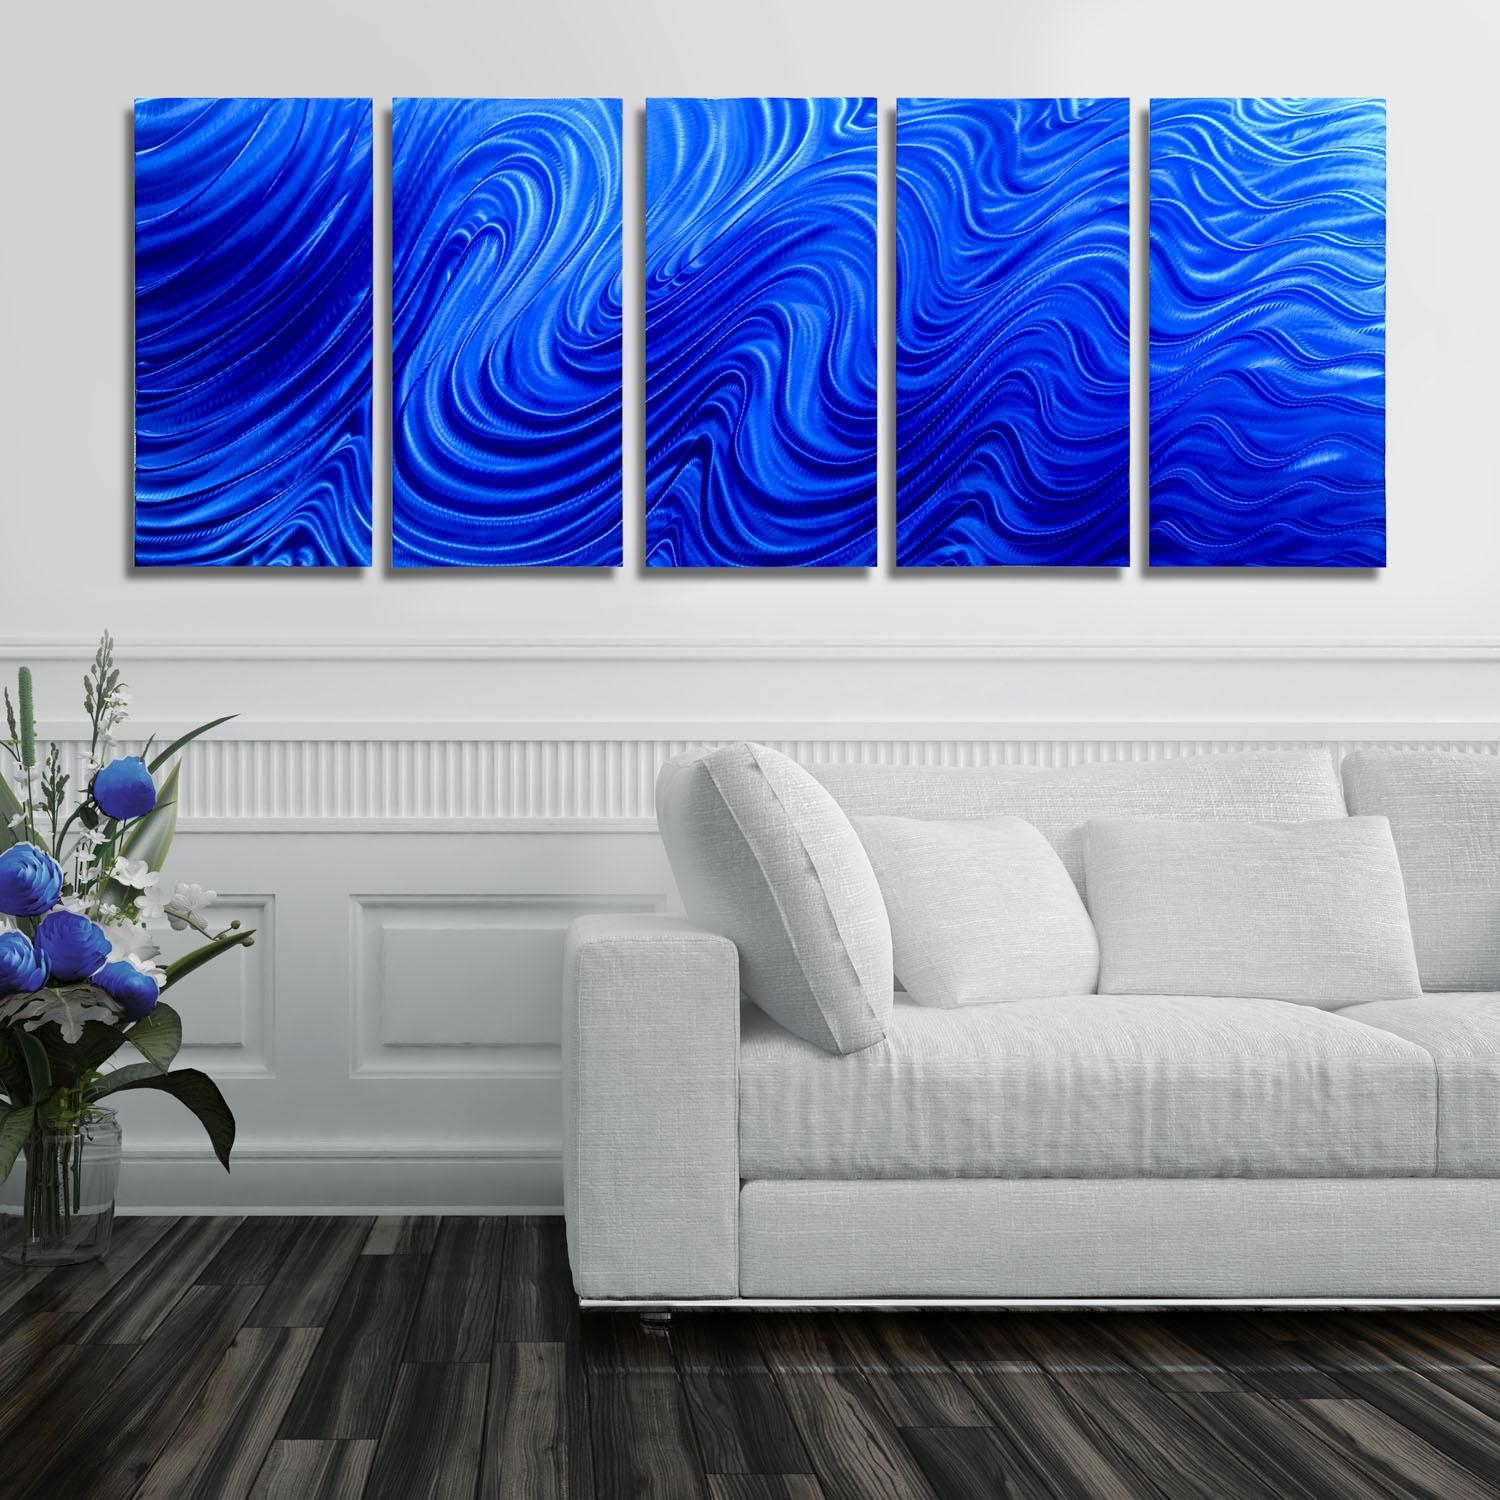 Blue Hypnotic Sands – Blue Four Panel Abstract Metal Wall Art With Regard To Large Abstract Metal Wall Art (View 15 of 20)